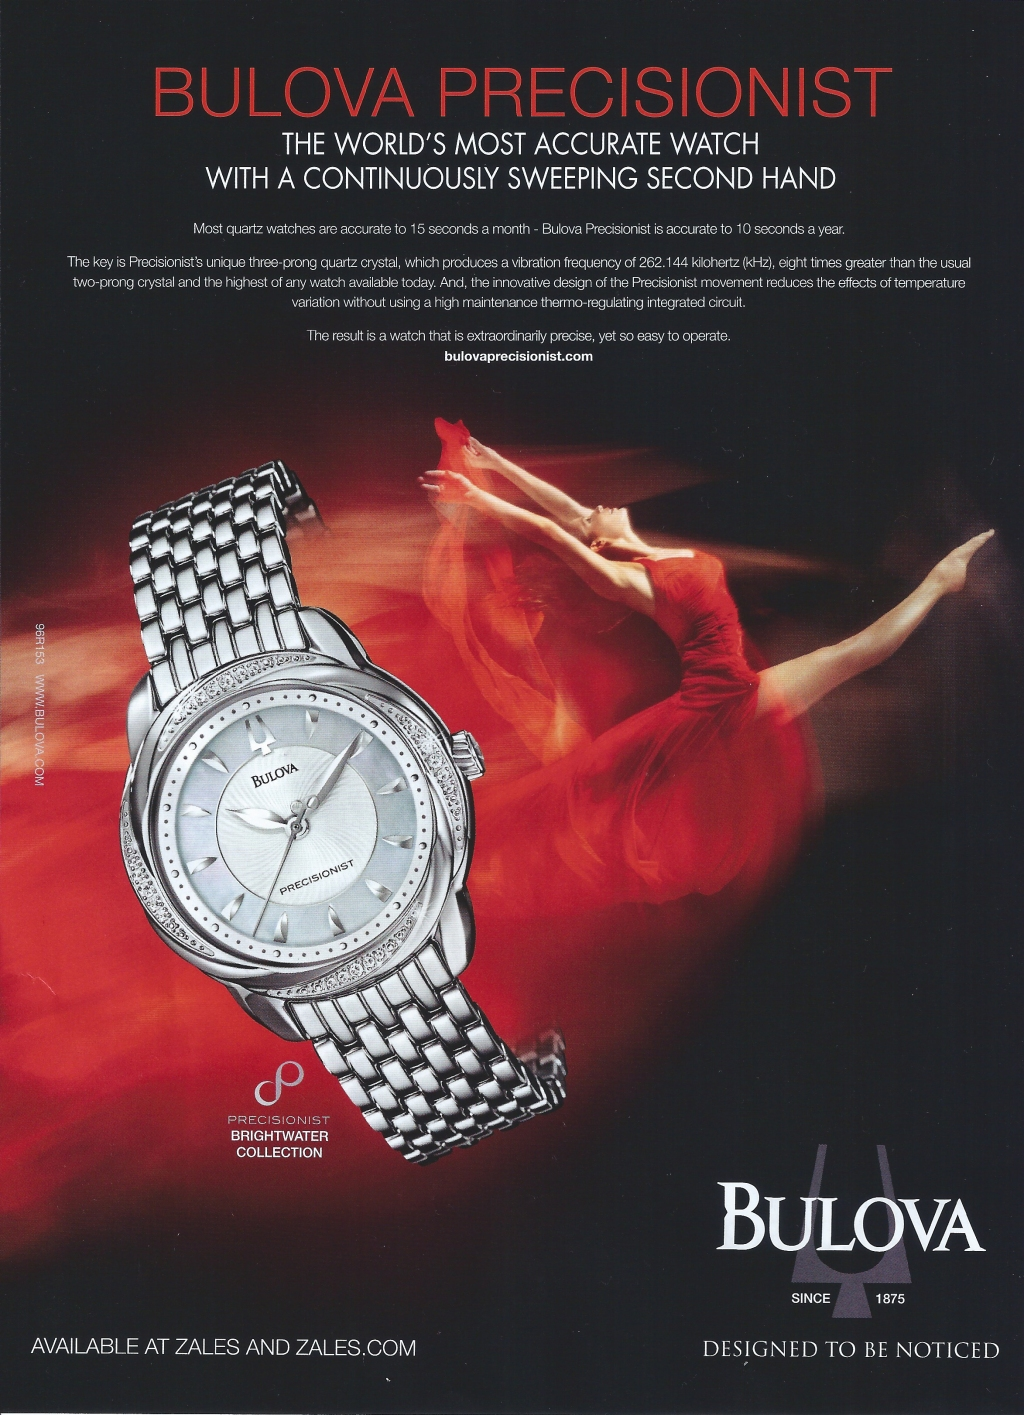 Bulova Precisionist. Designed to be noticed. Watch Ad.